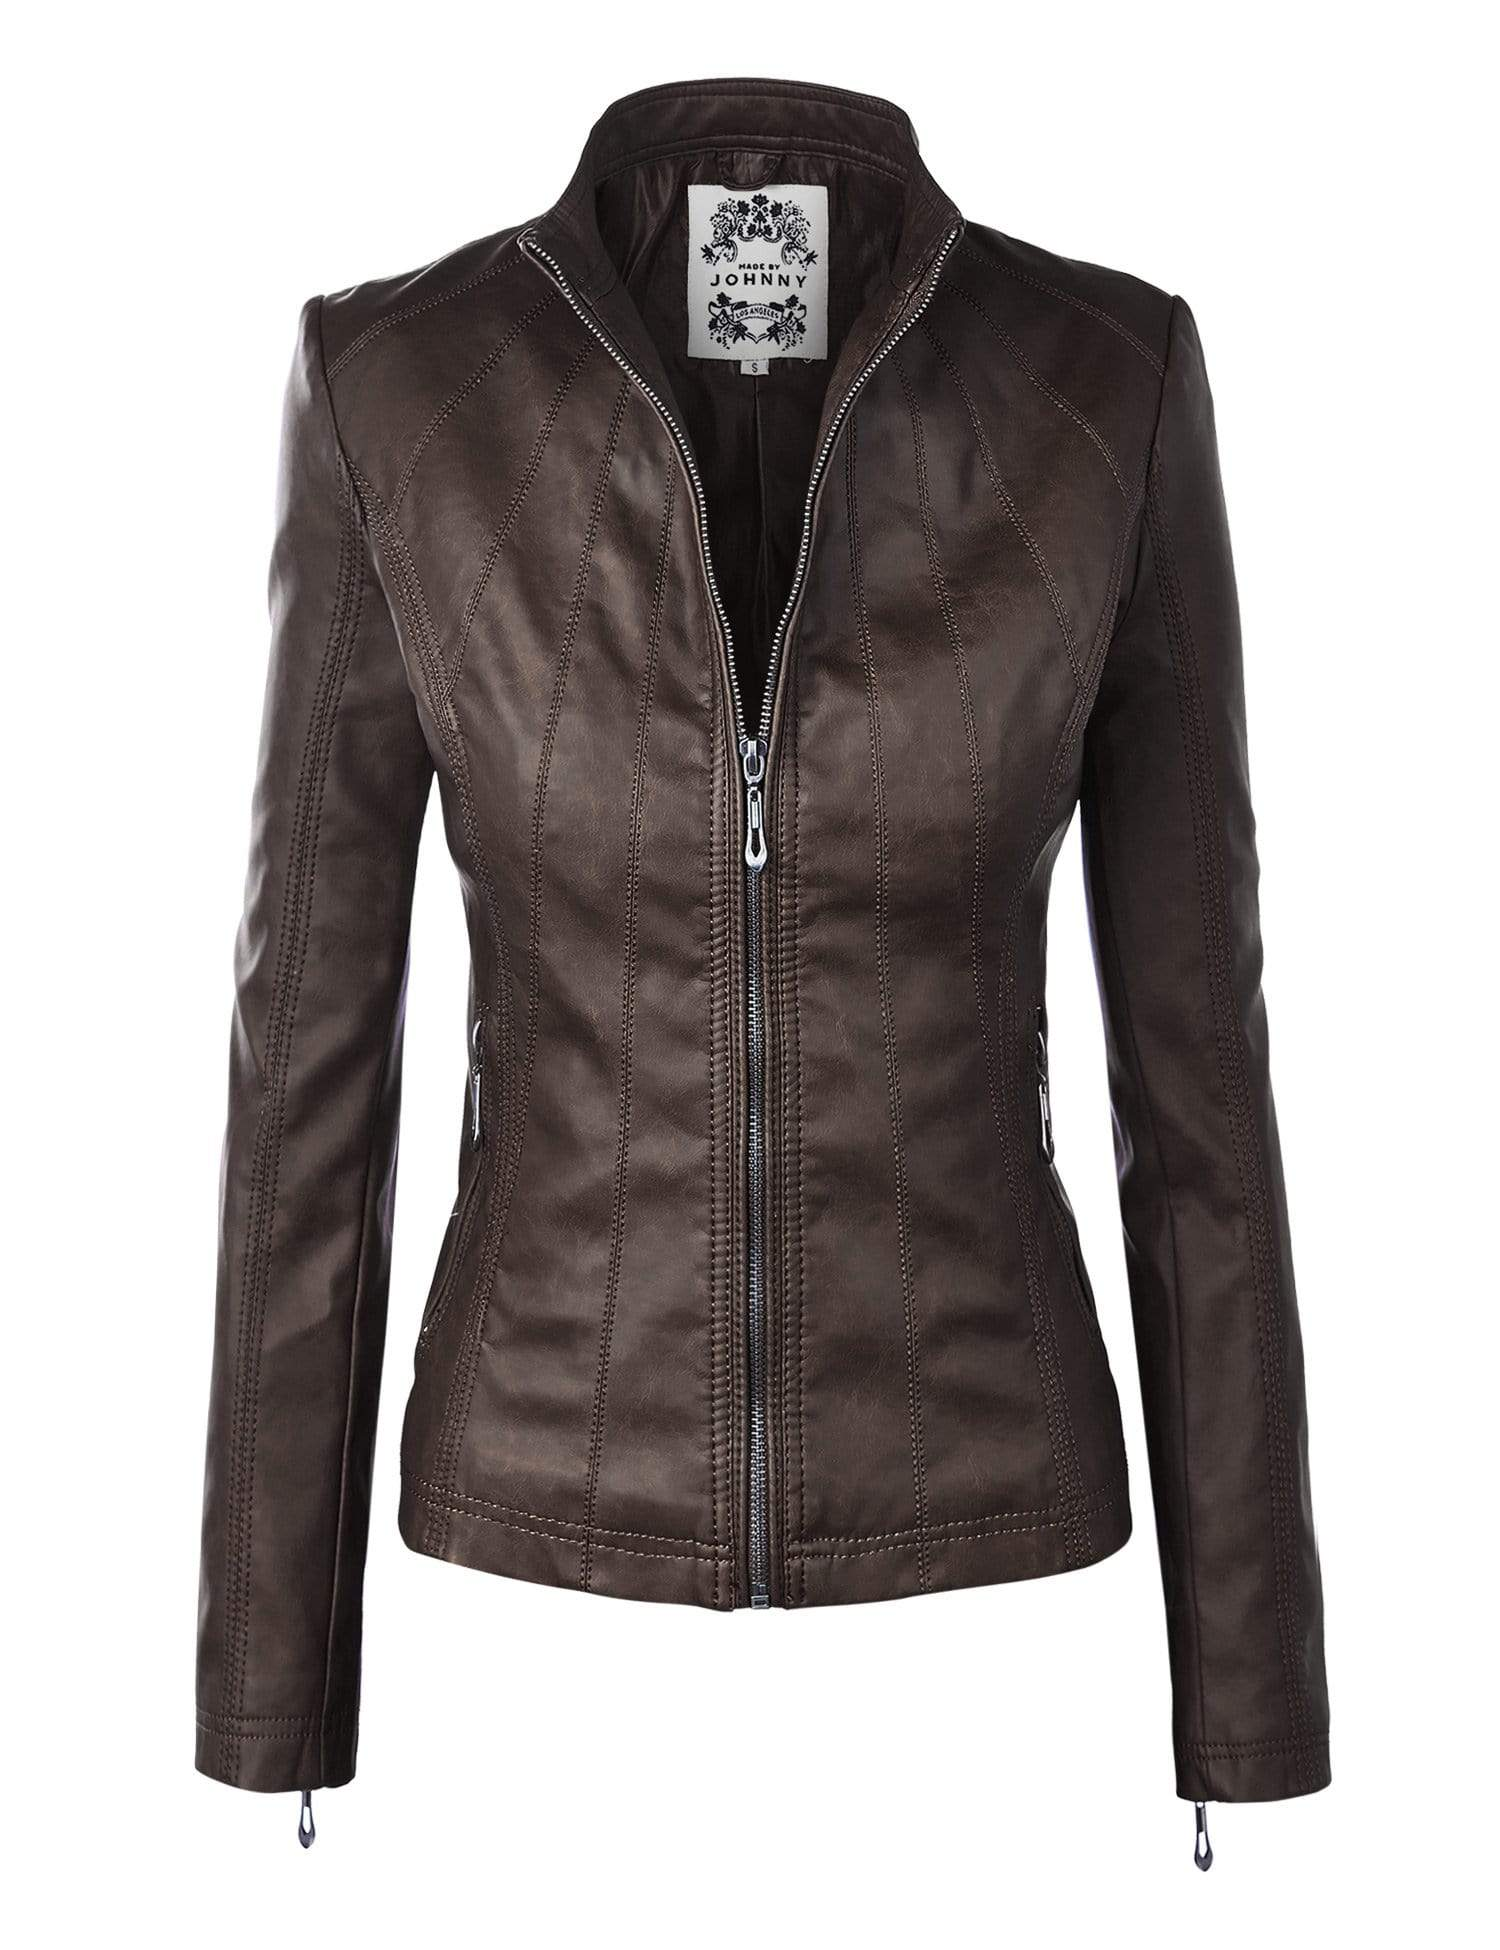 DAILYHAUTE Women's jacket COFFEE / XS Made By Johnny MBJ Womens Faux Leather Zip Up Moto Biker Jacket with Stitching Detail